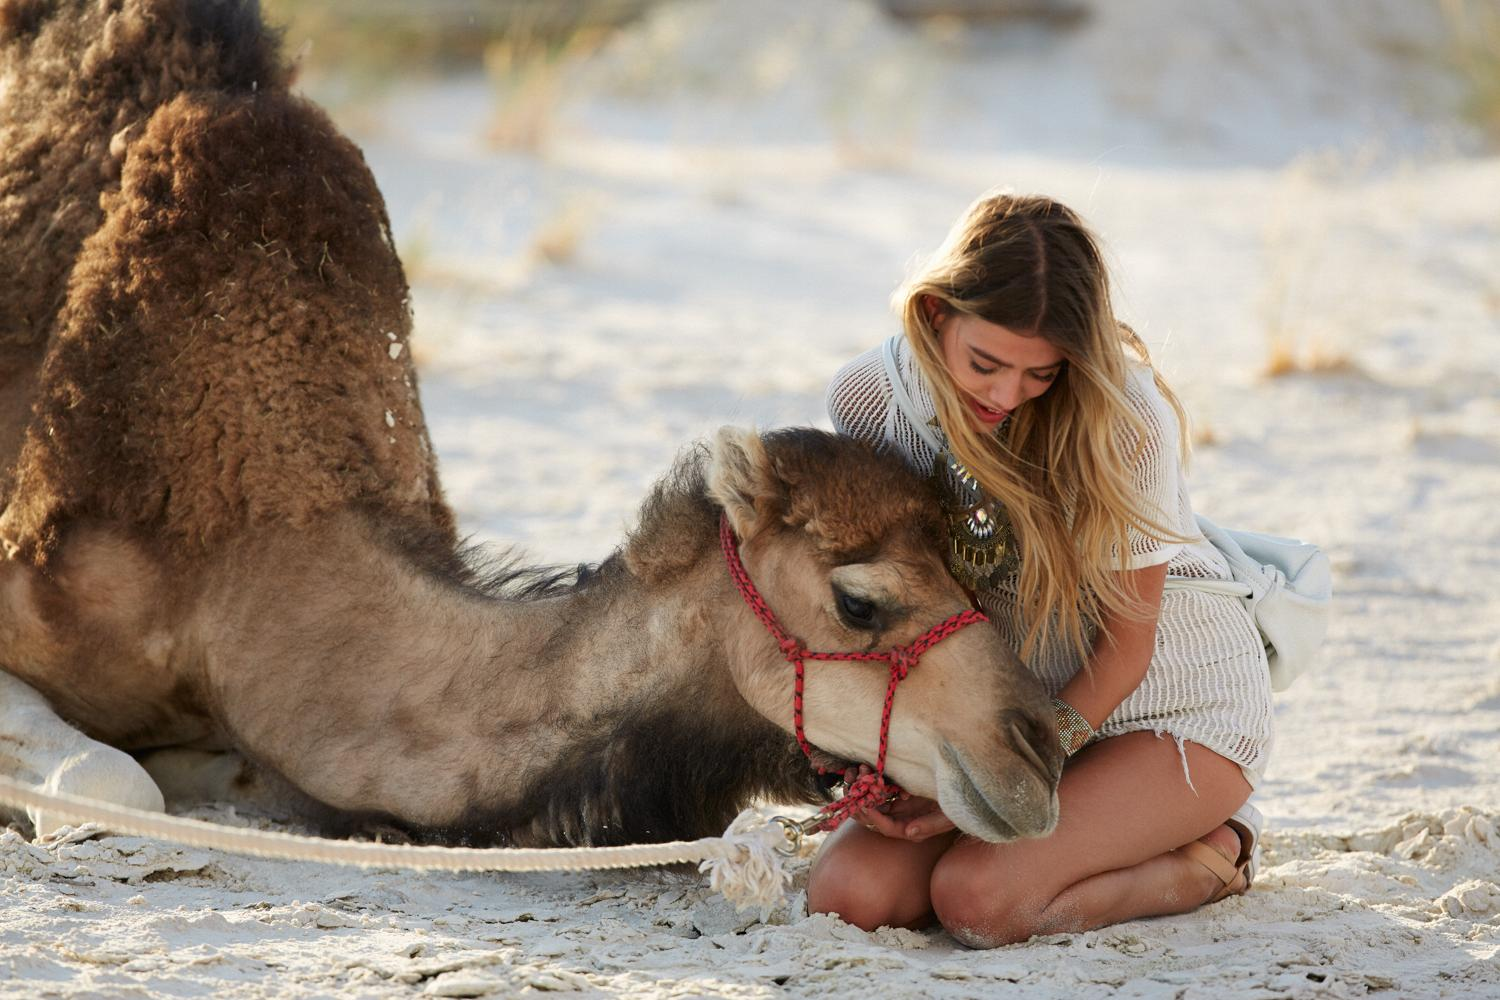 Go behind the scenes with the stars of our lookbook: @joannahalpin and Mitchell the camel! 🐪 http://t.co/GWfnmikEef http://t.co/i9UoAF4oGw